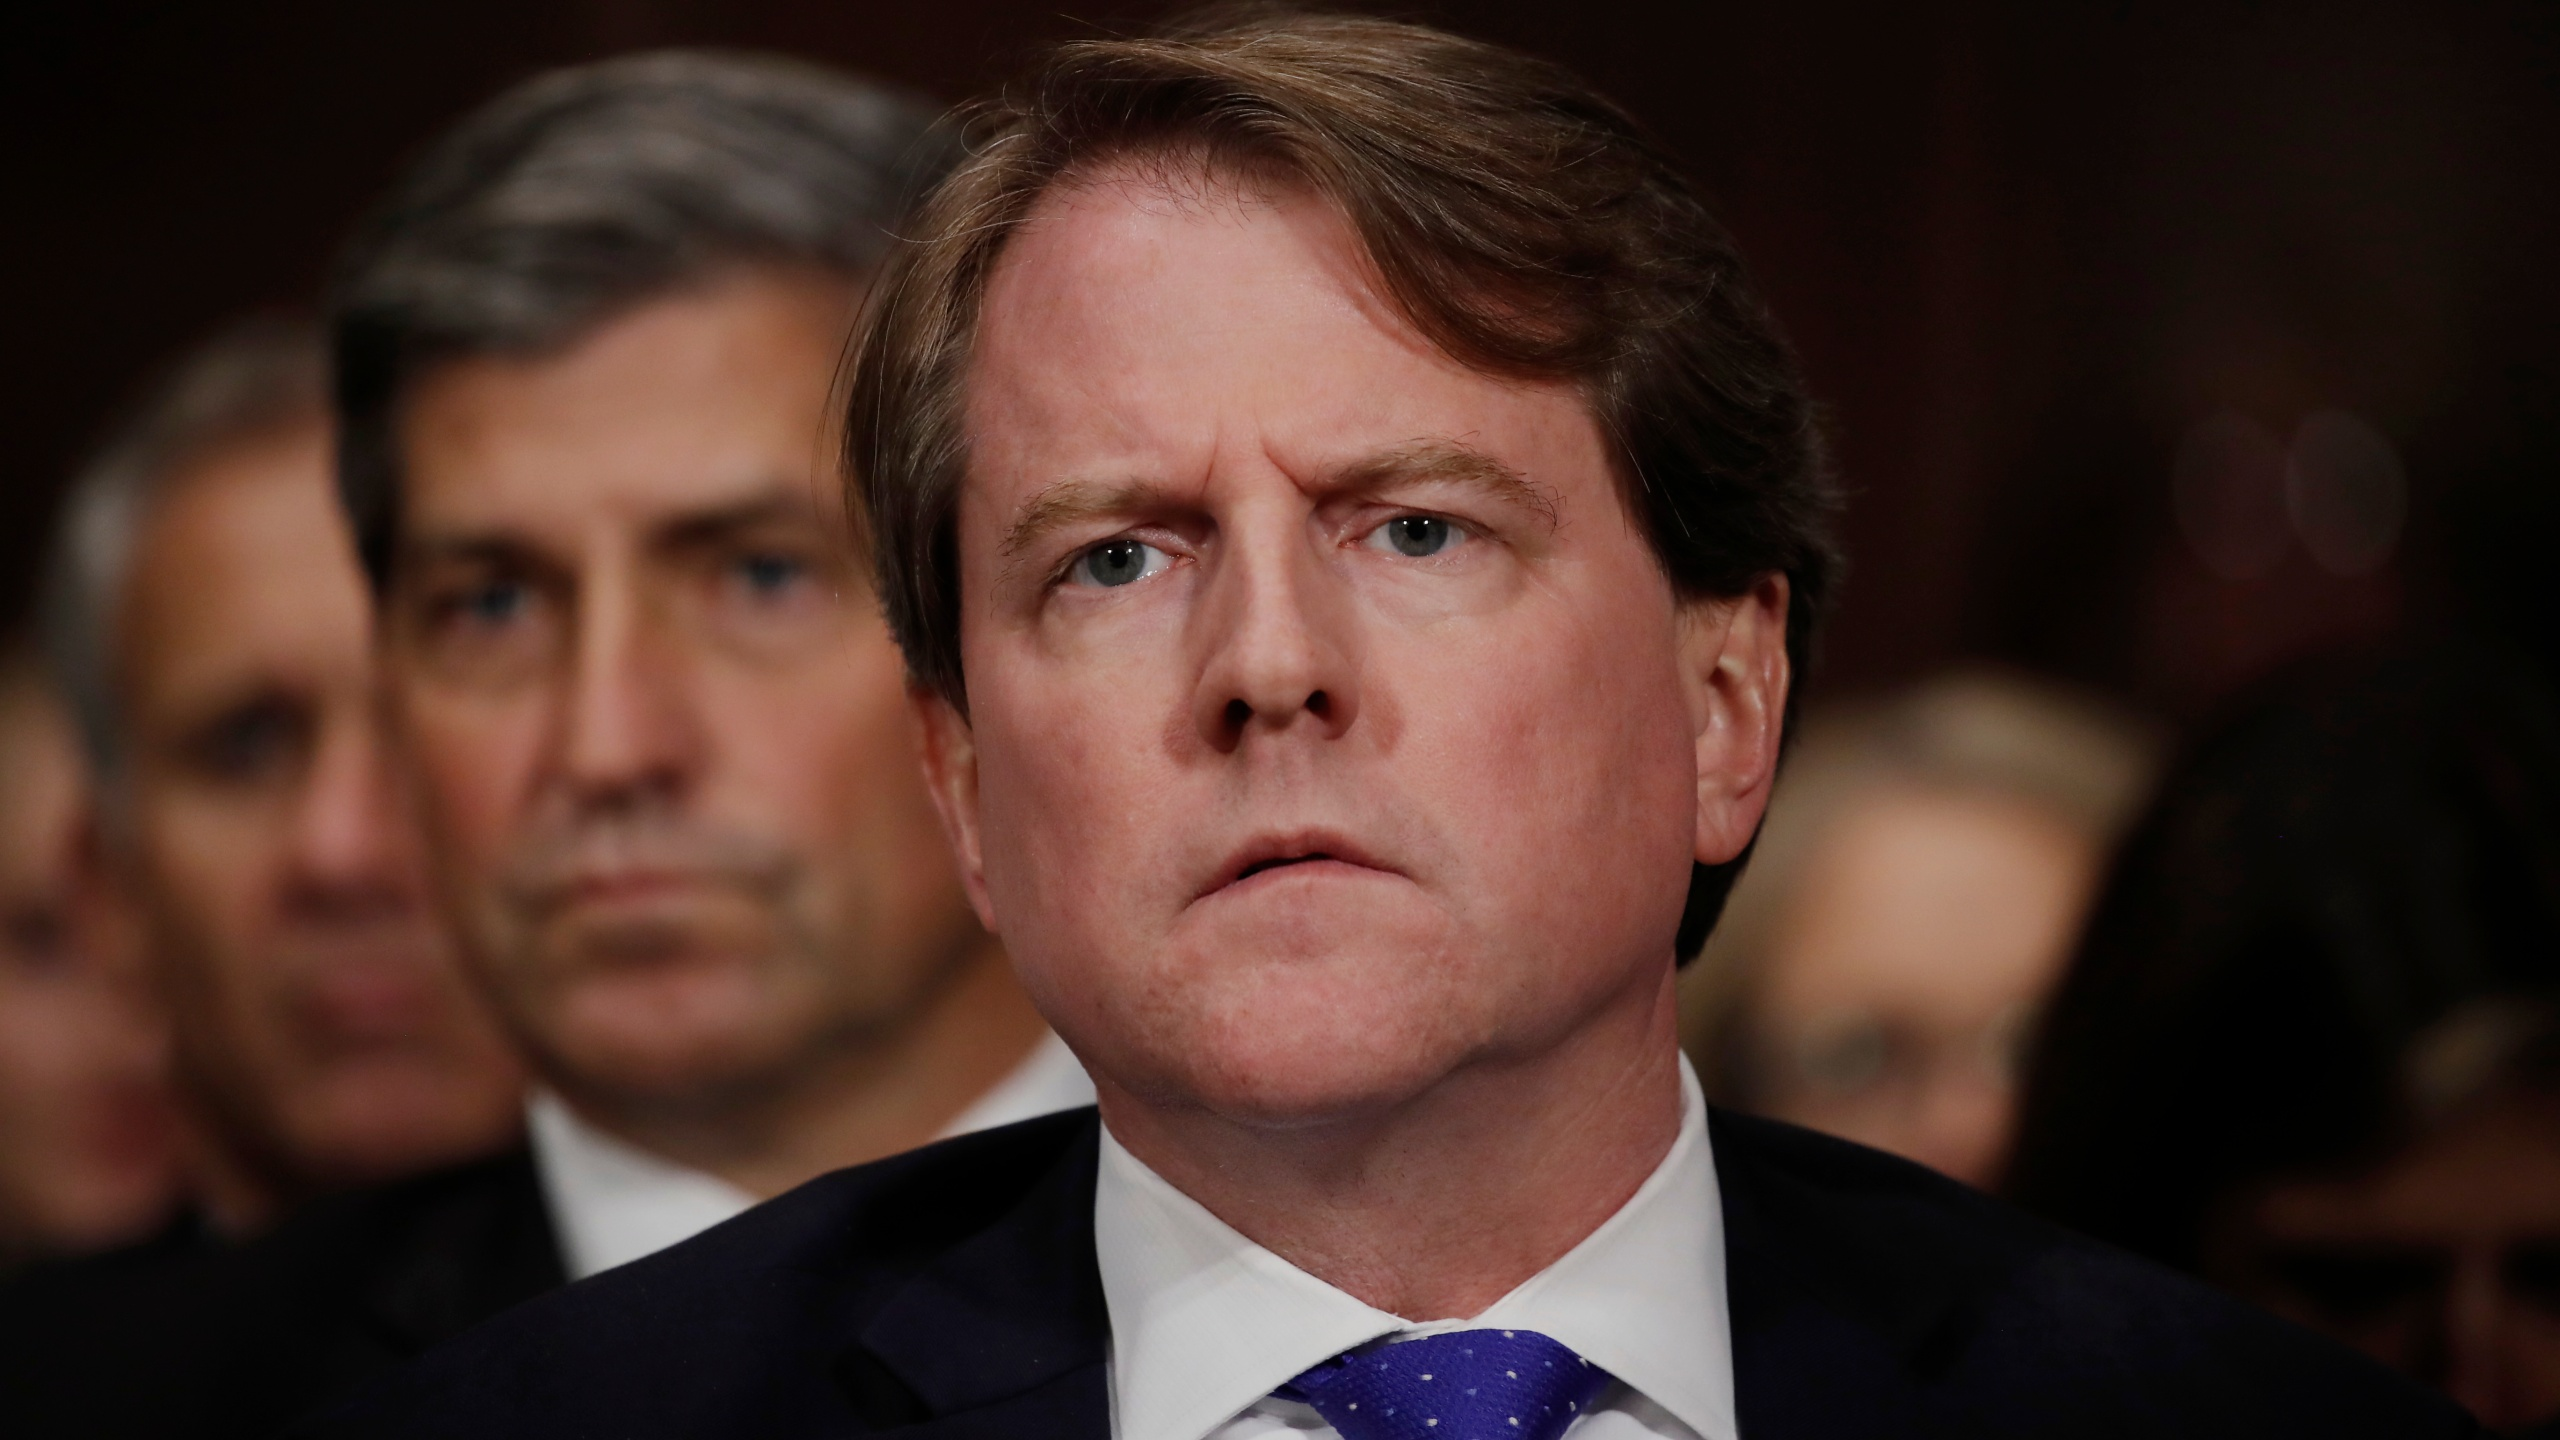 White House counsel Don Mcgahn listens to Judge Brett Kavanaugh testify before the Senate Judiciary Committee during his Supreme Court confirmation hearing in the Dirksen Senate Office Building on Capitol Hill September 27, 2018 in Washington, DC. (Credit: Jim Bourg-Pool/Getty Images)